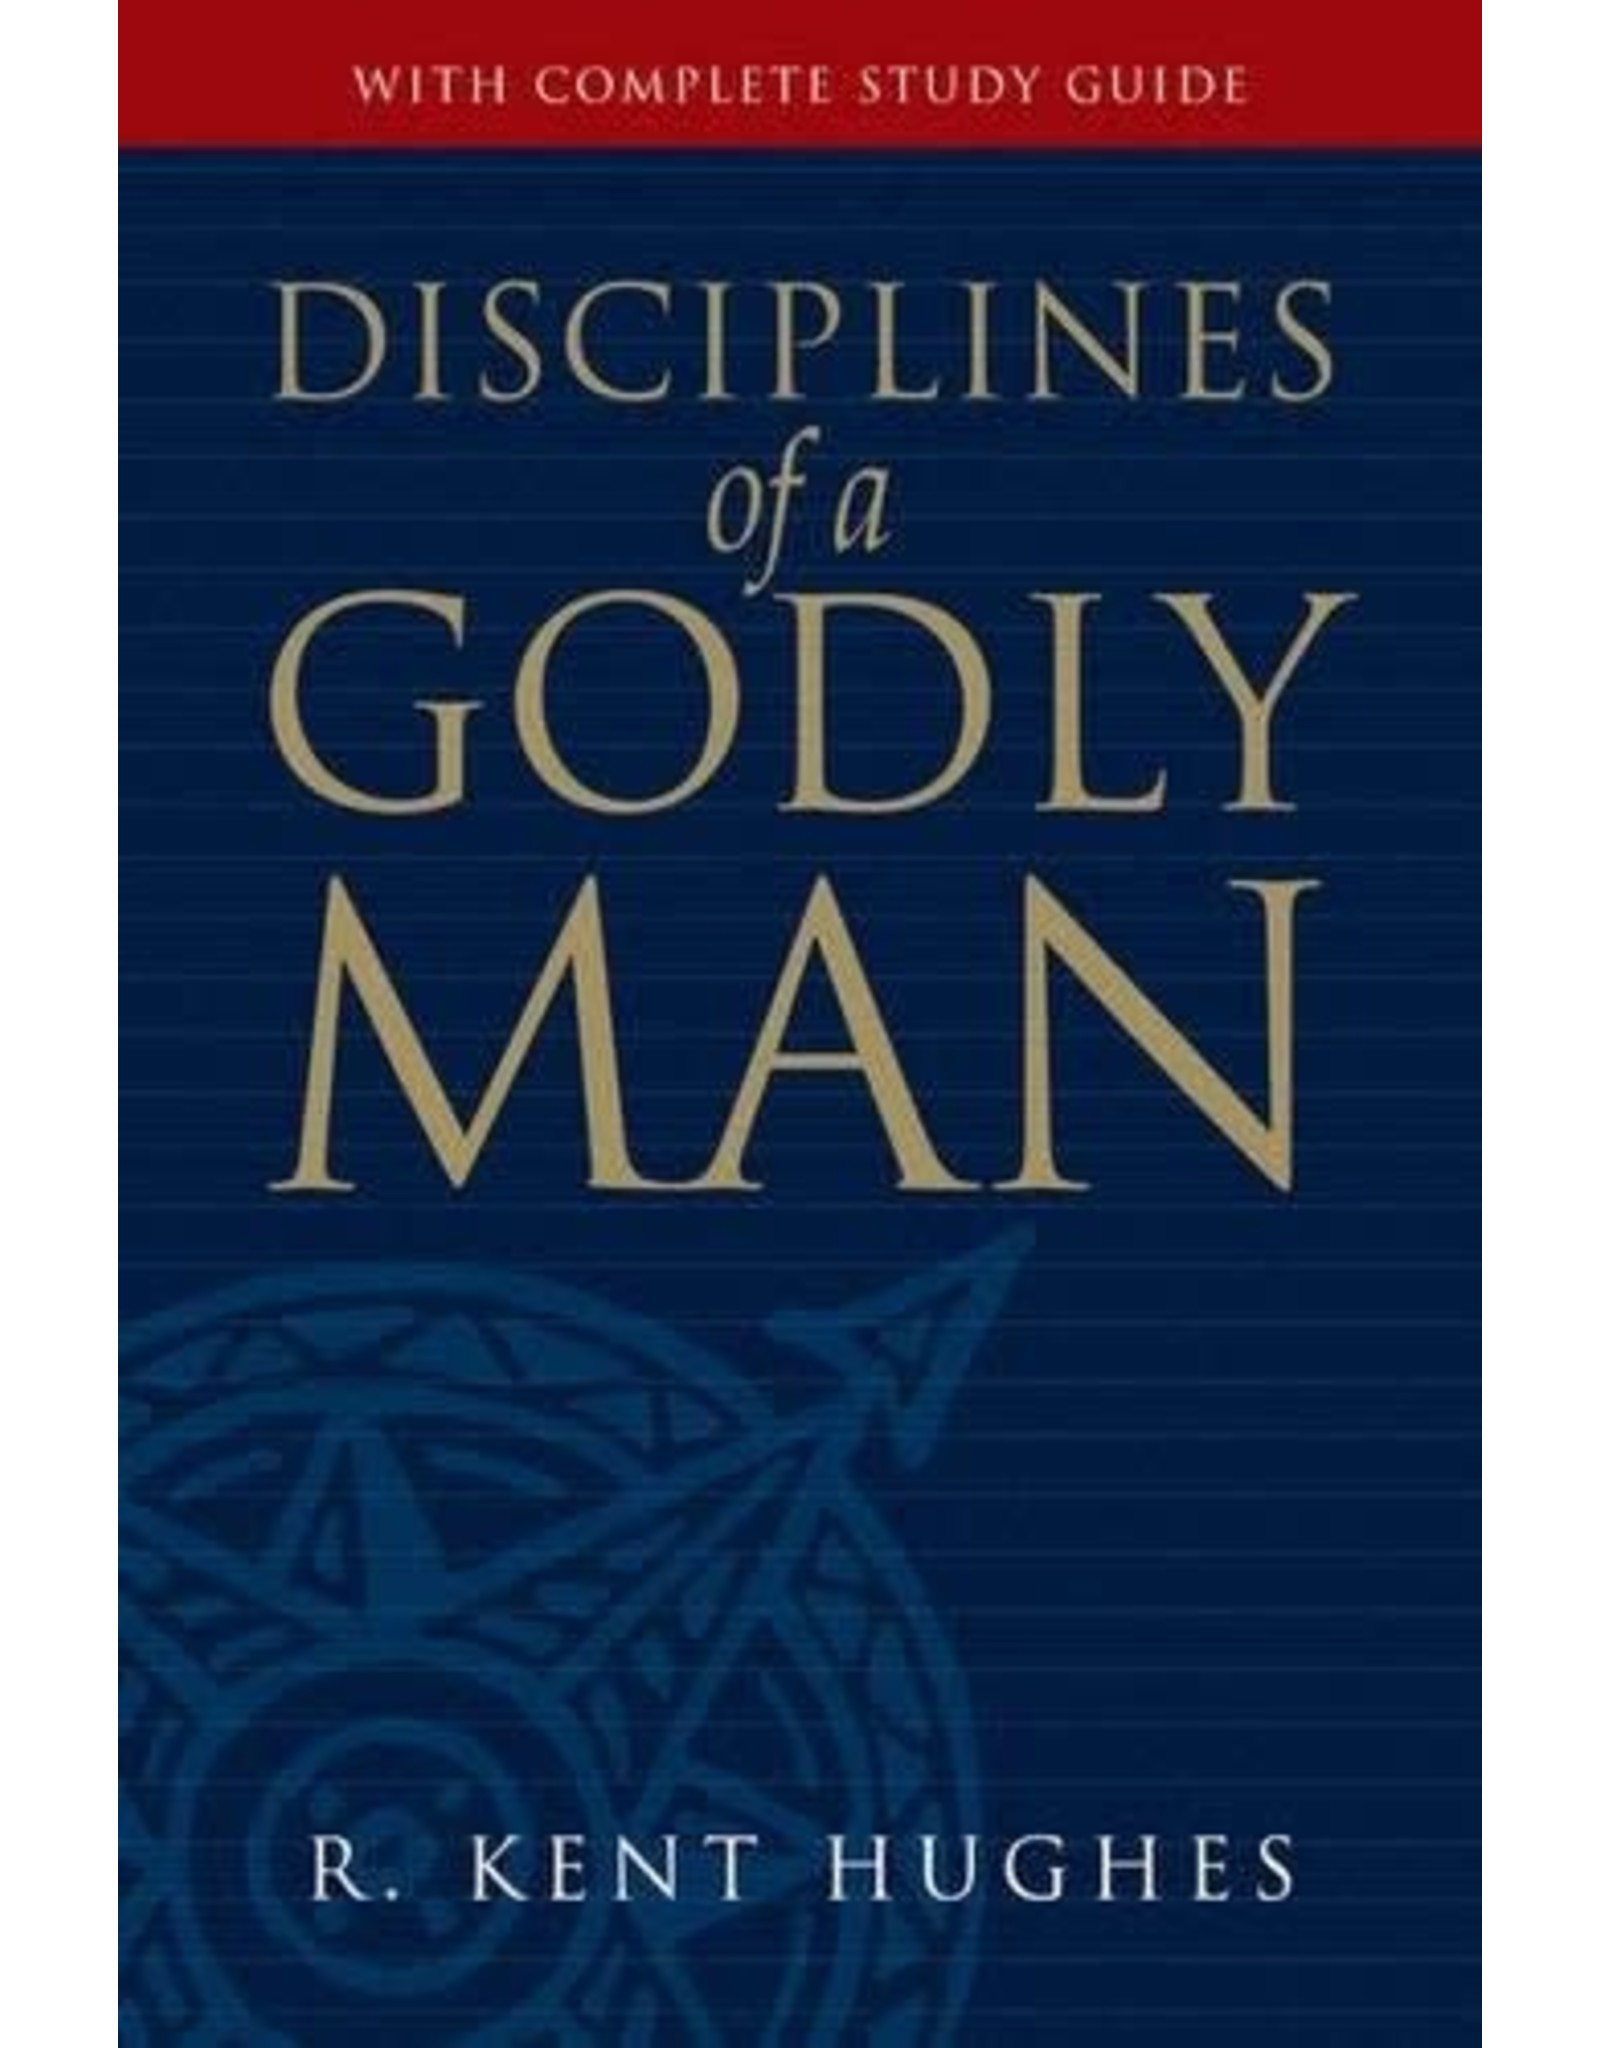 Crossway / Good News Disciplines of a Godly Man